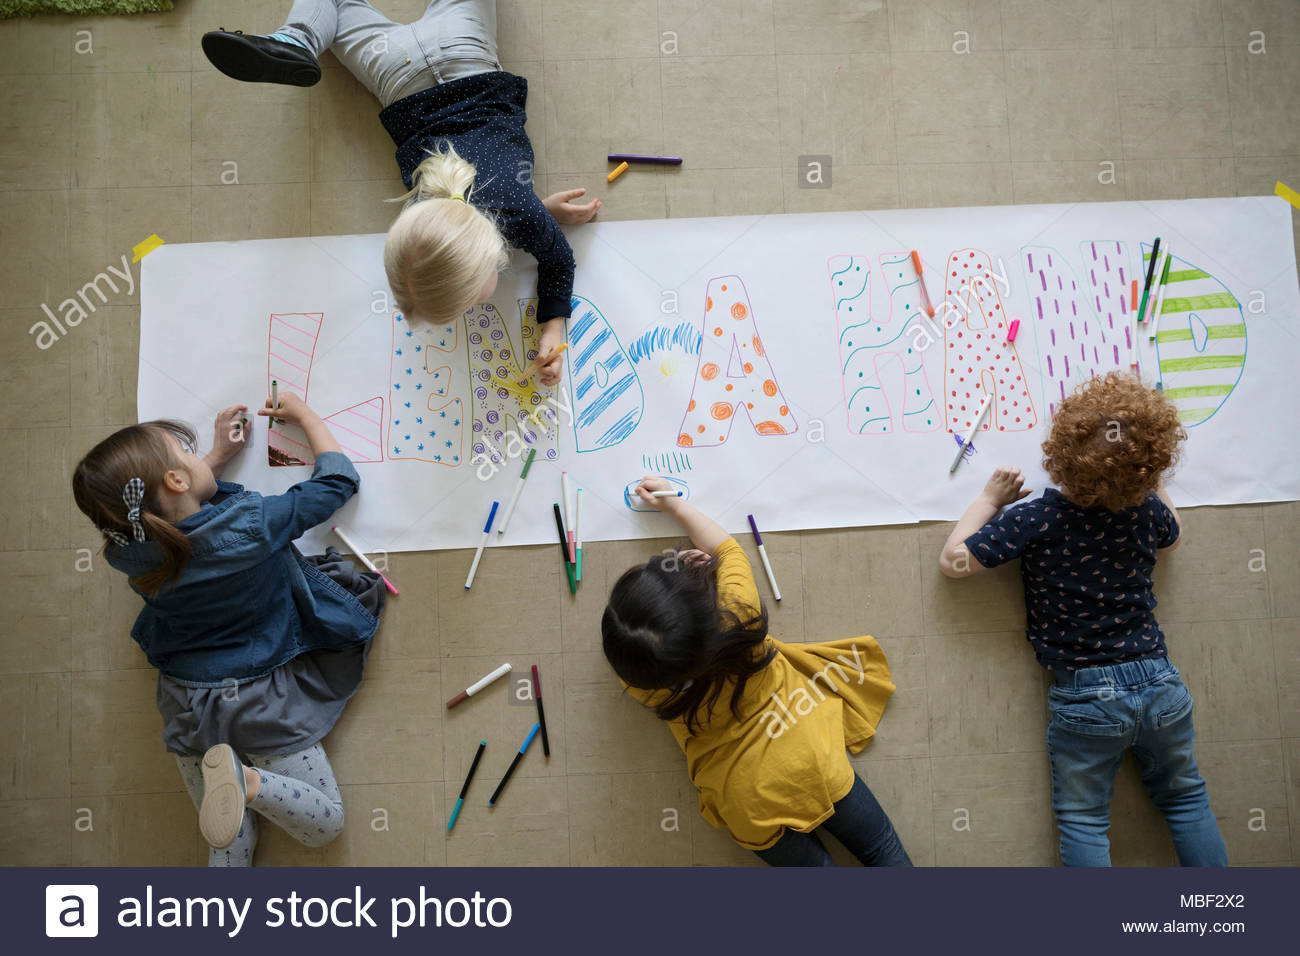 Community focused preschool students with markers drawing on poster - Stock Image